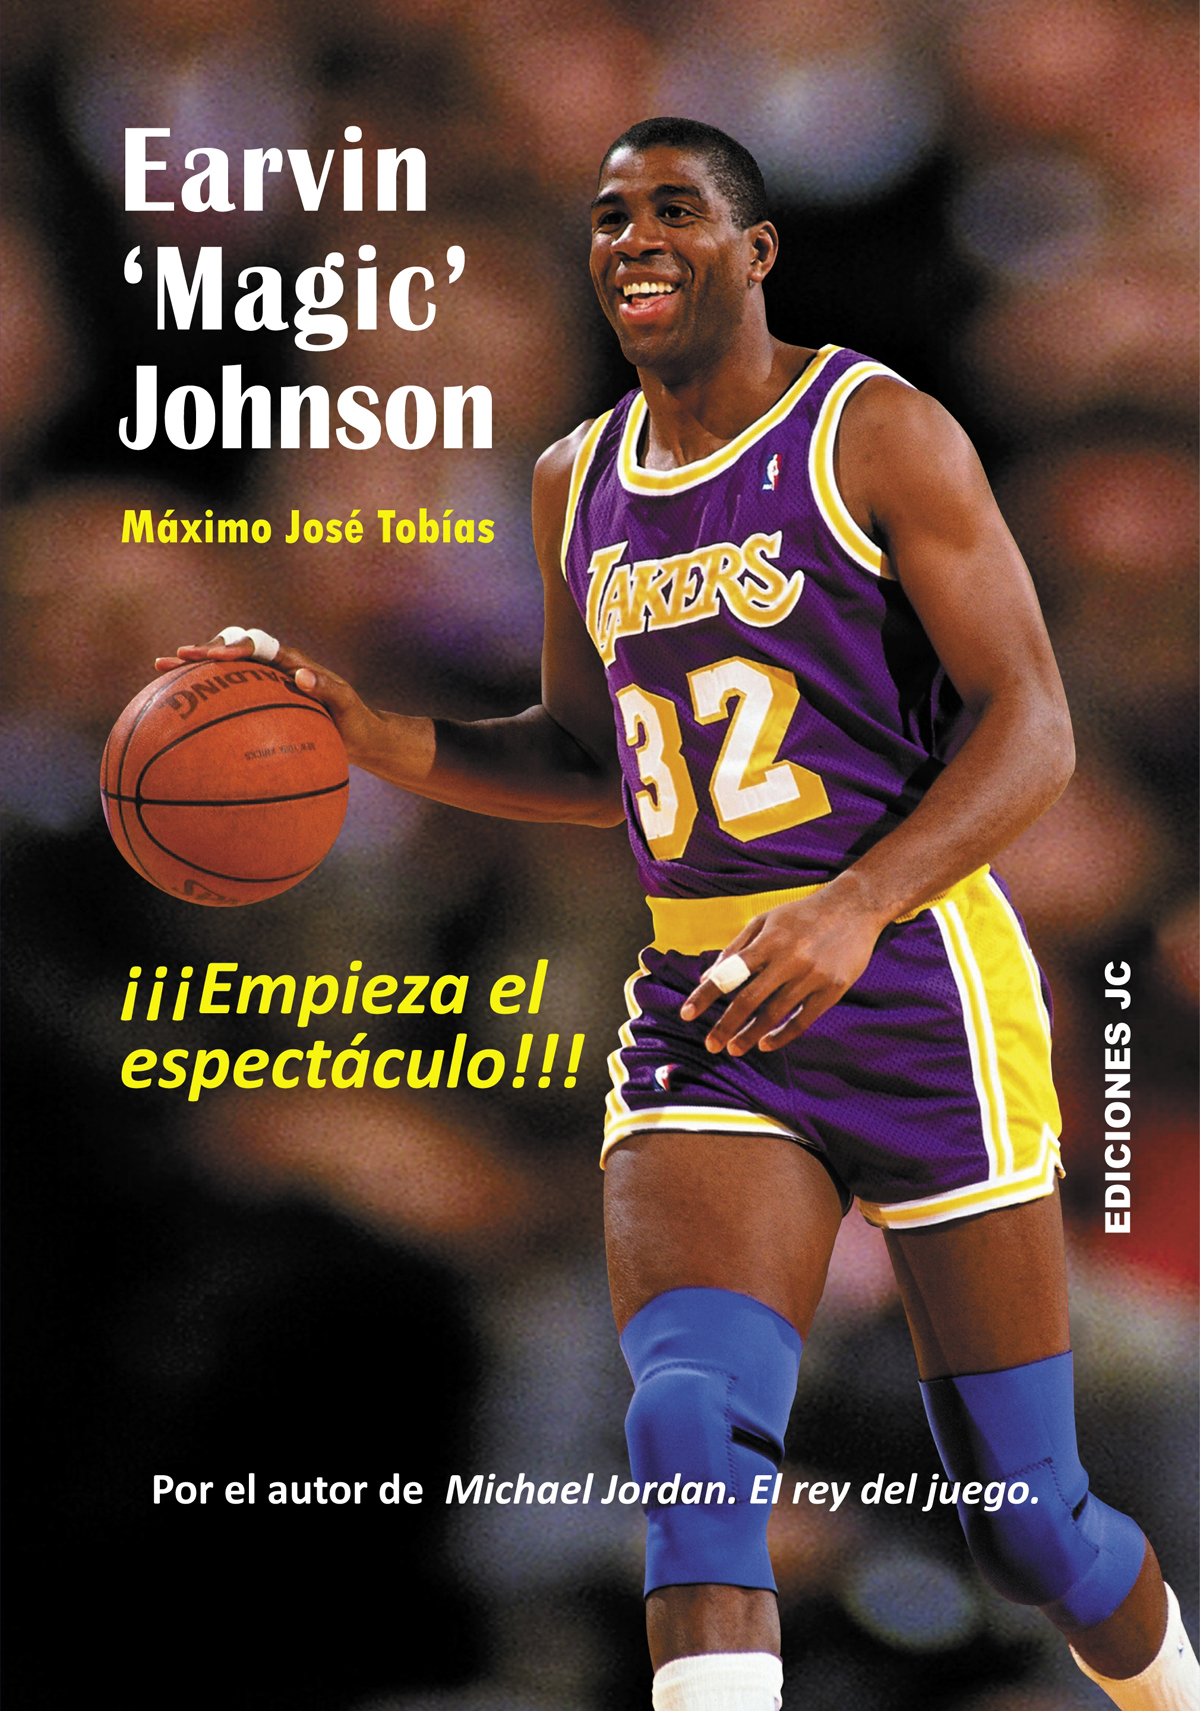 EARVIN 'MAGIC' JOHNSON. EMPIEZA EL ESPECTÁCULO